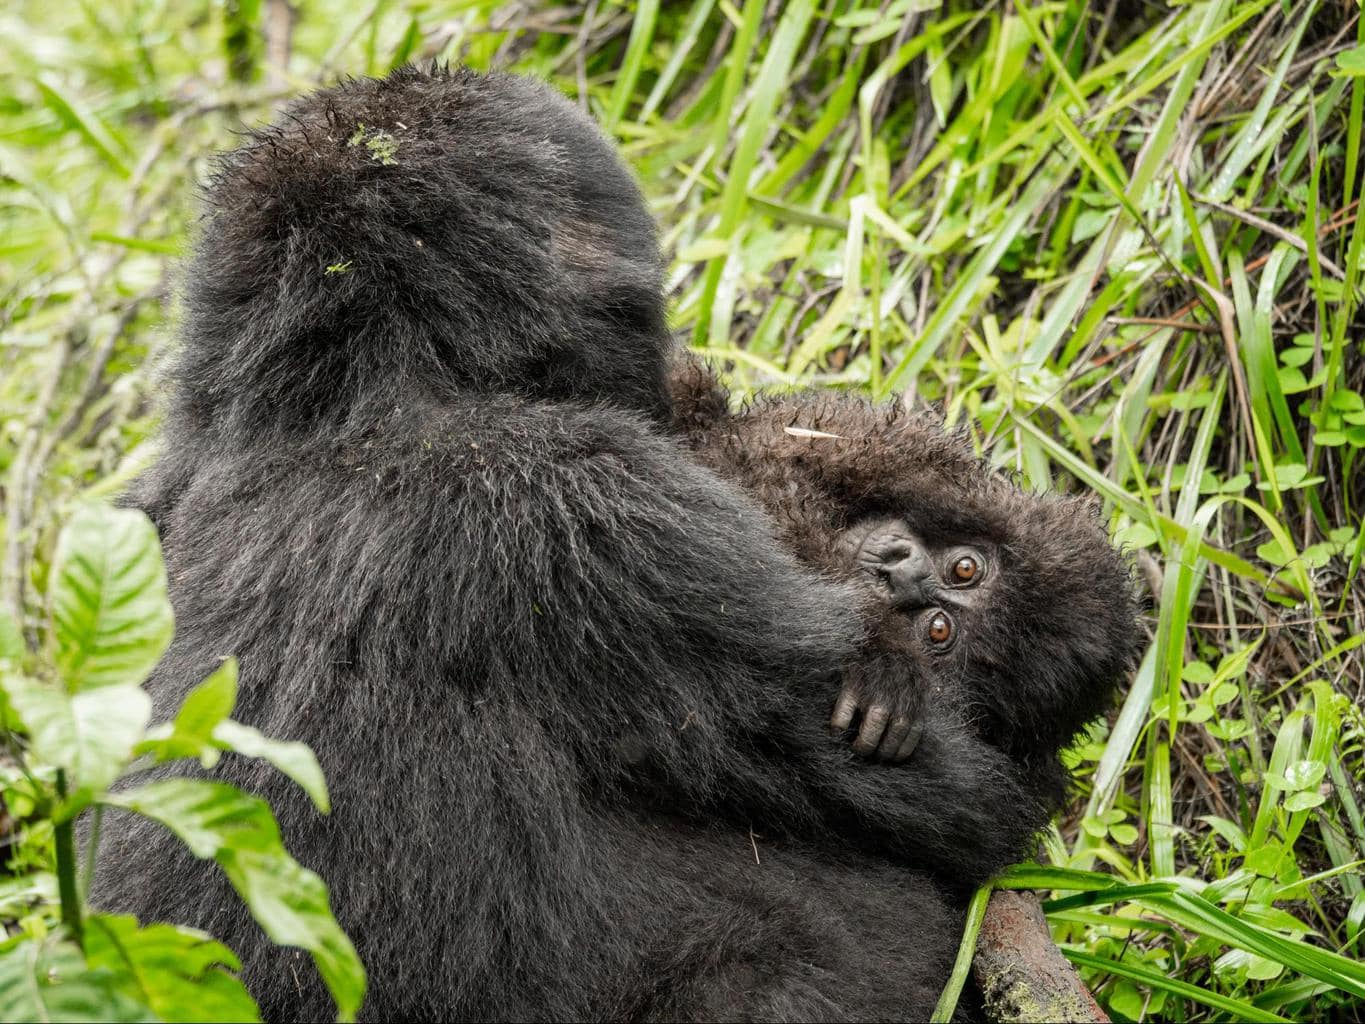 The most adorable baby gorilla